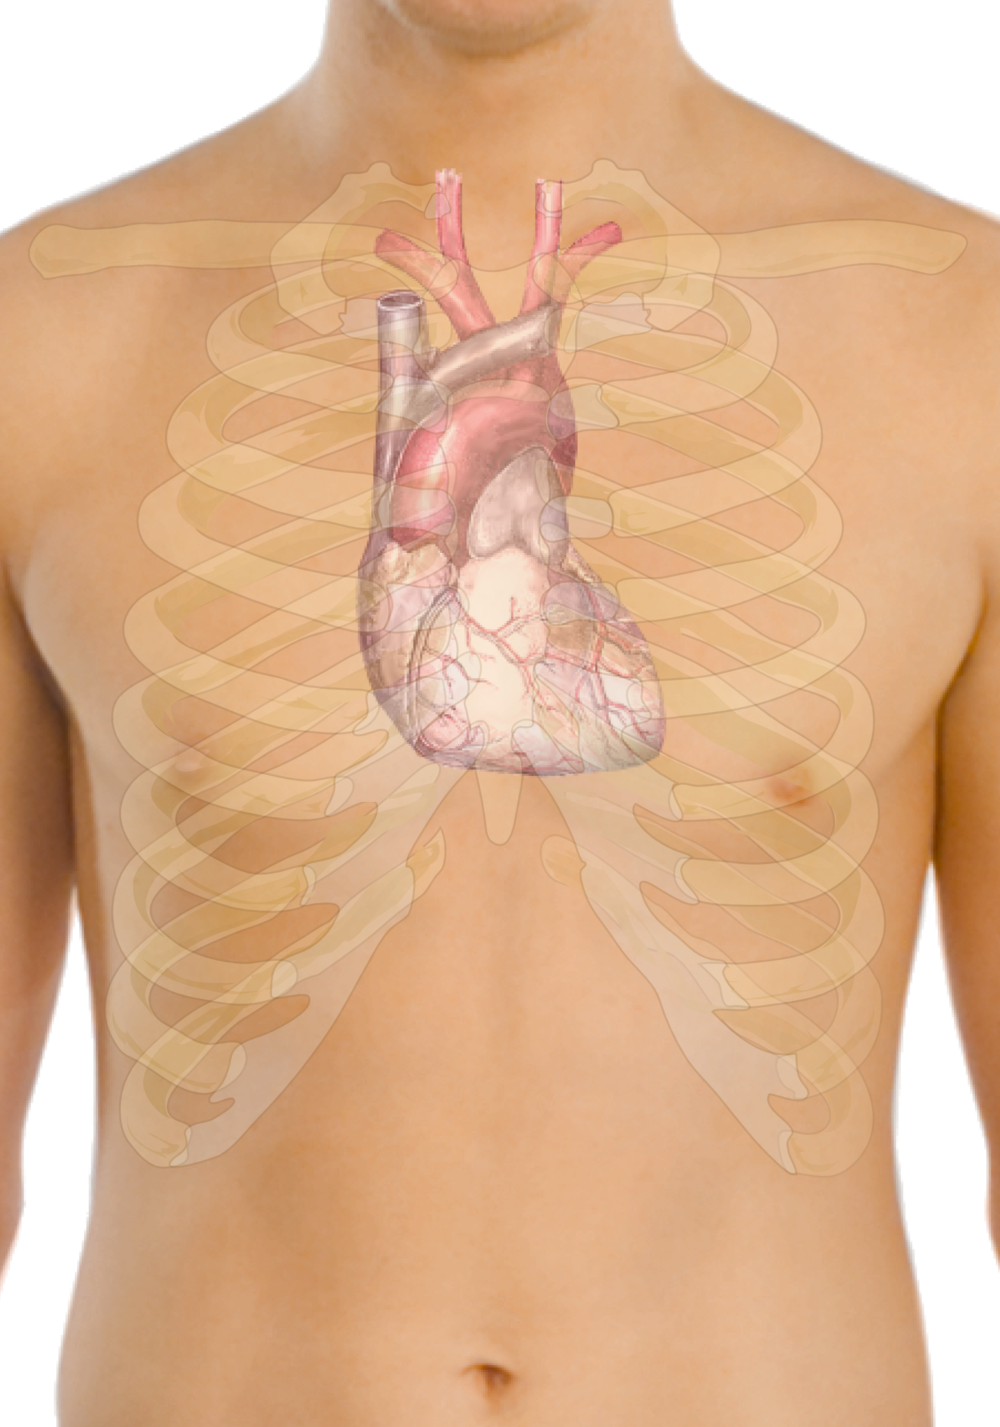 The heart. Credit: Wikimedia Commons.